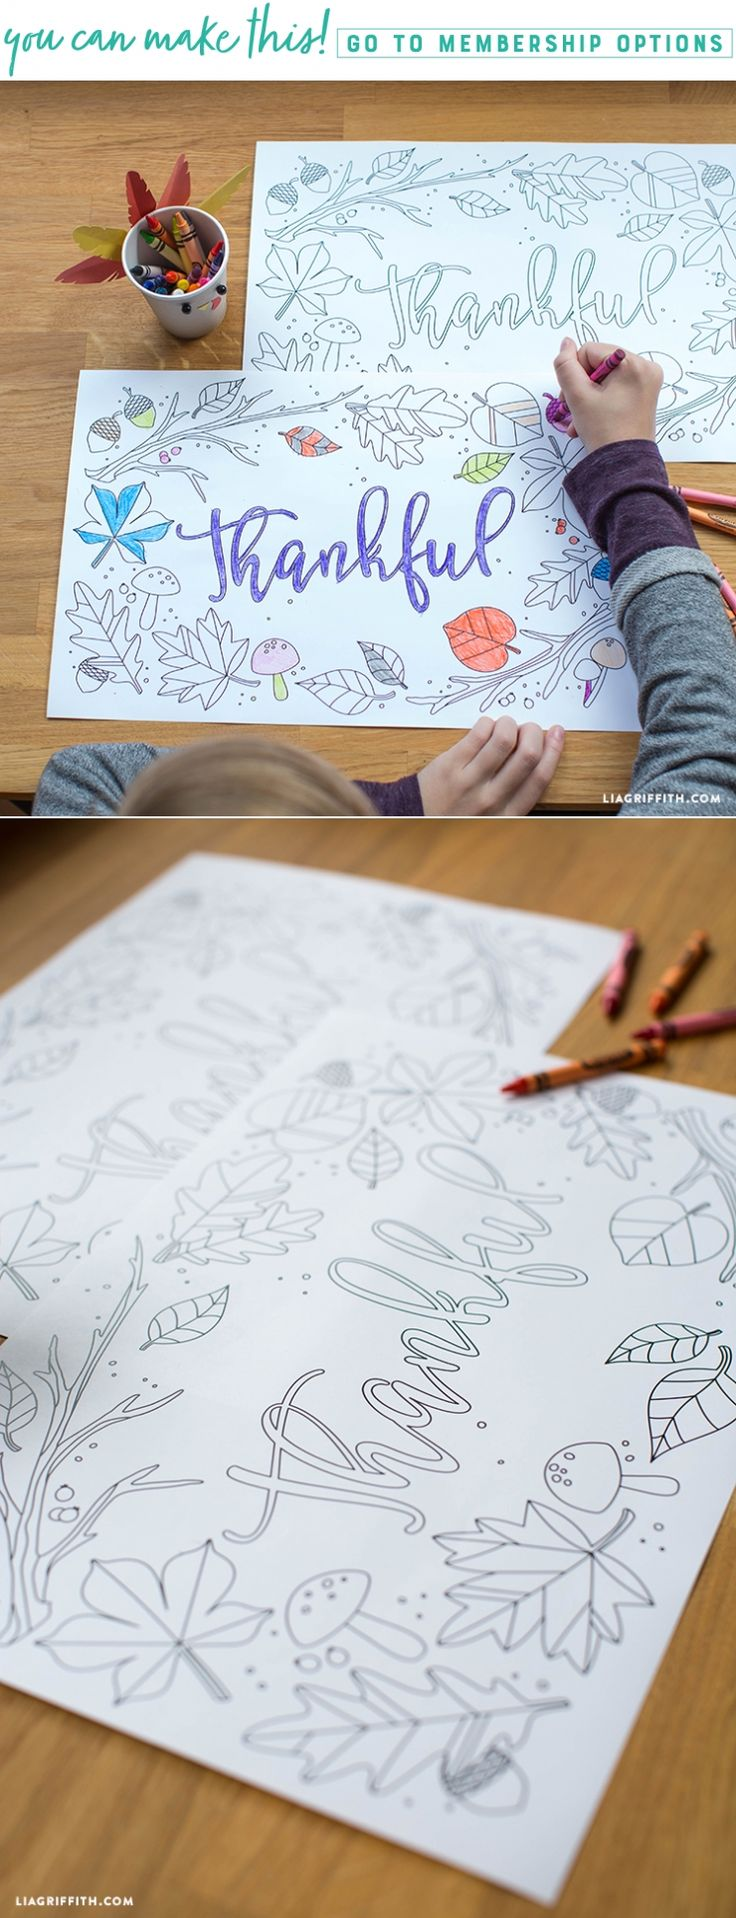 Kids Thanksgiving Coloring Placemats - Lia Griffith - www.liagriffith.com #thanksgiving #givethanks #homefortheholidays #printables #diykids #diyinspiration #madewithlia